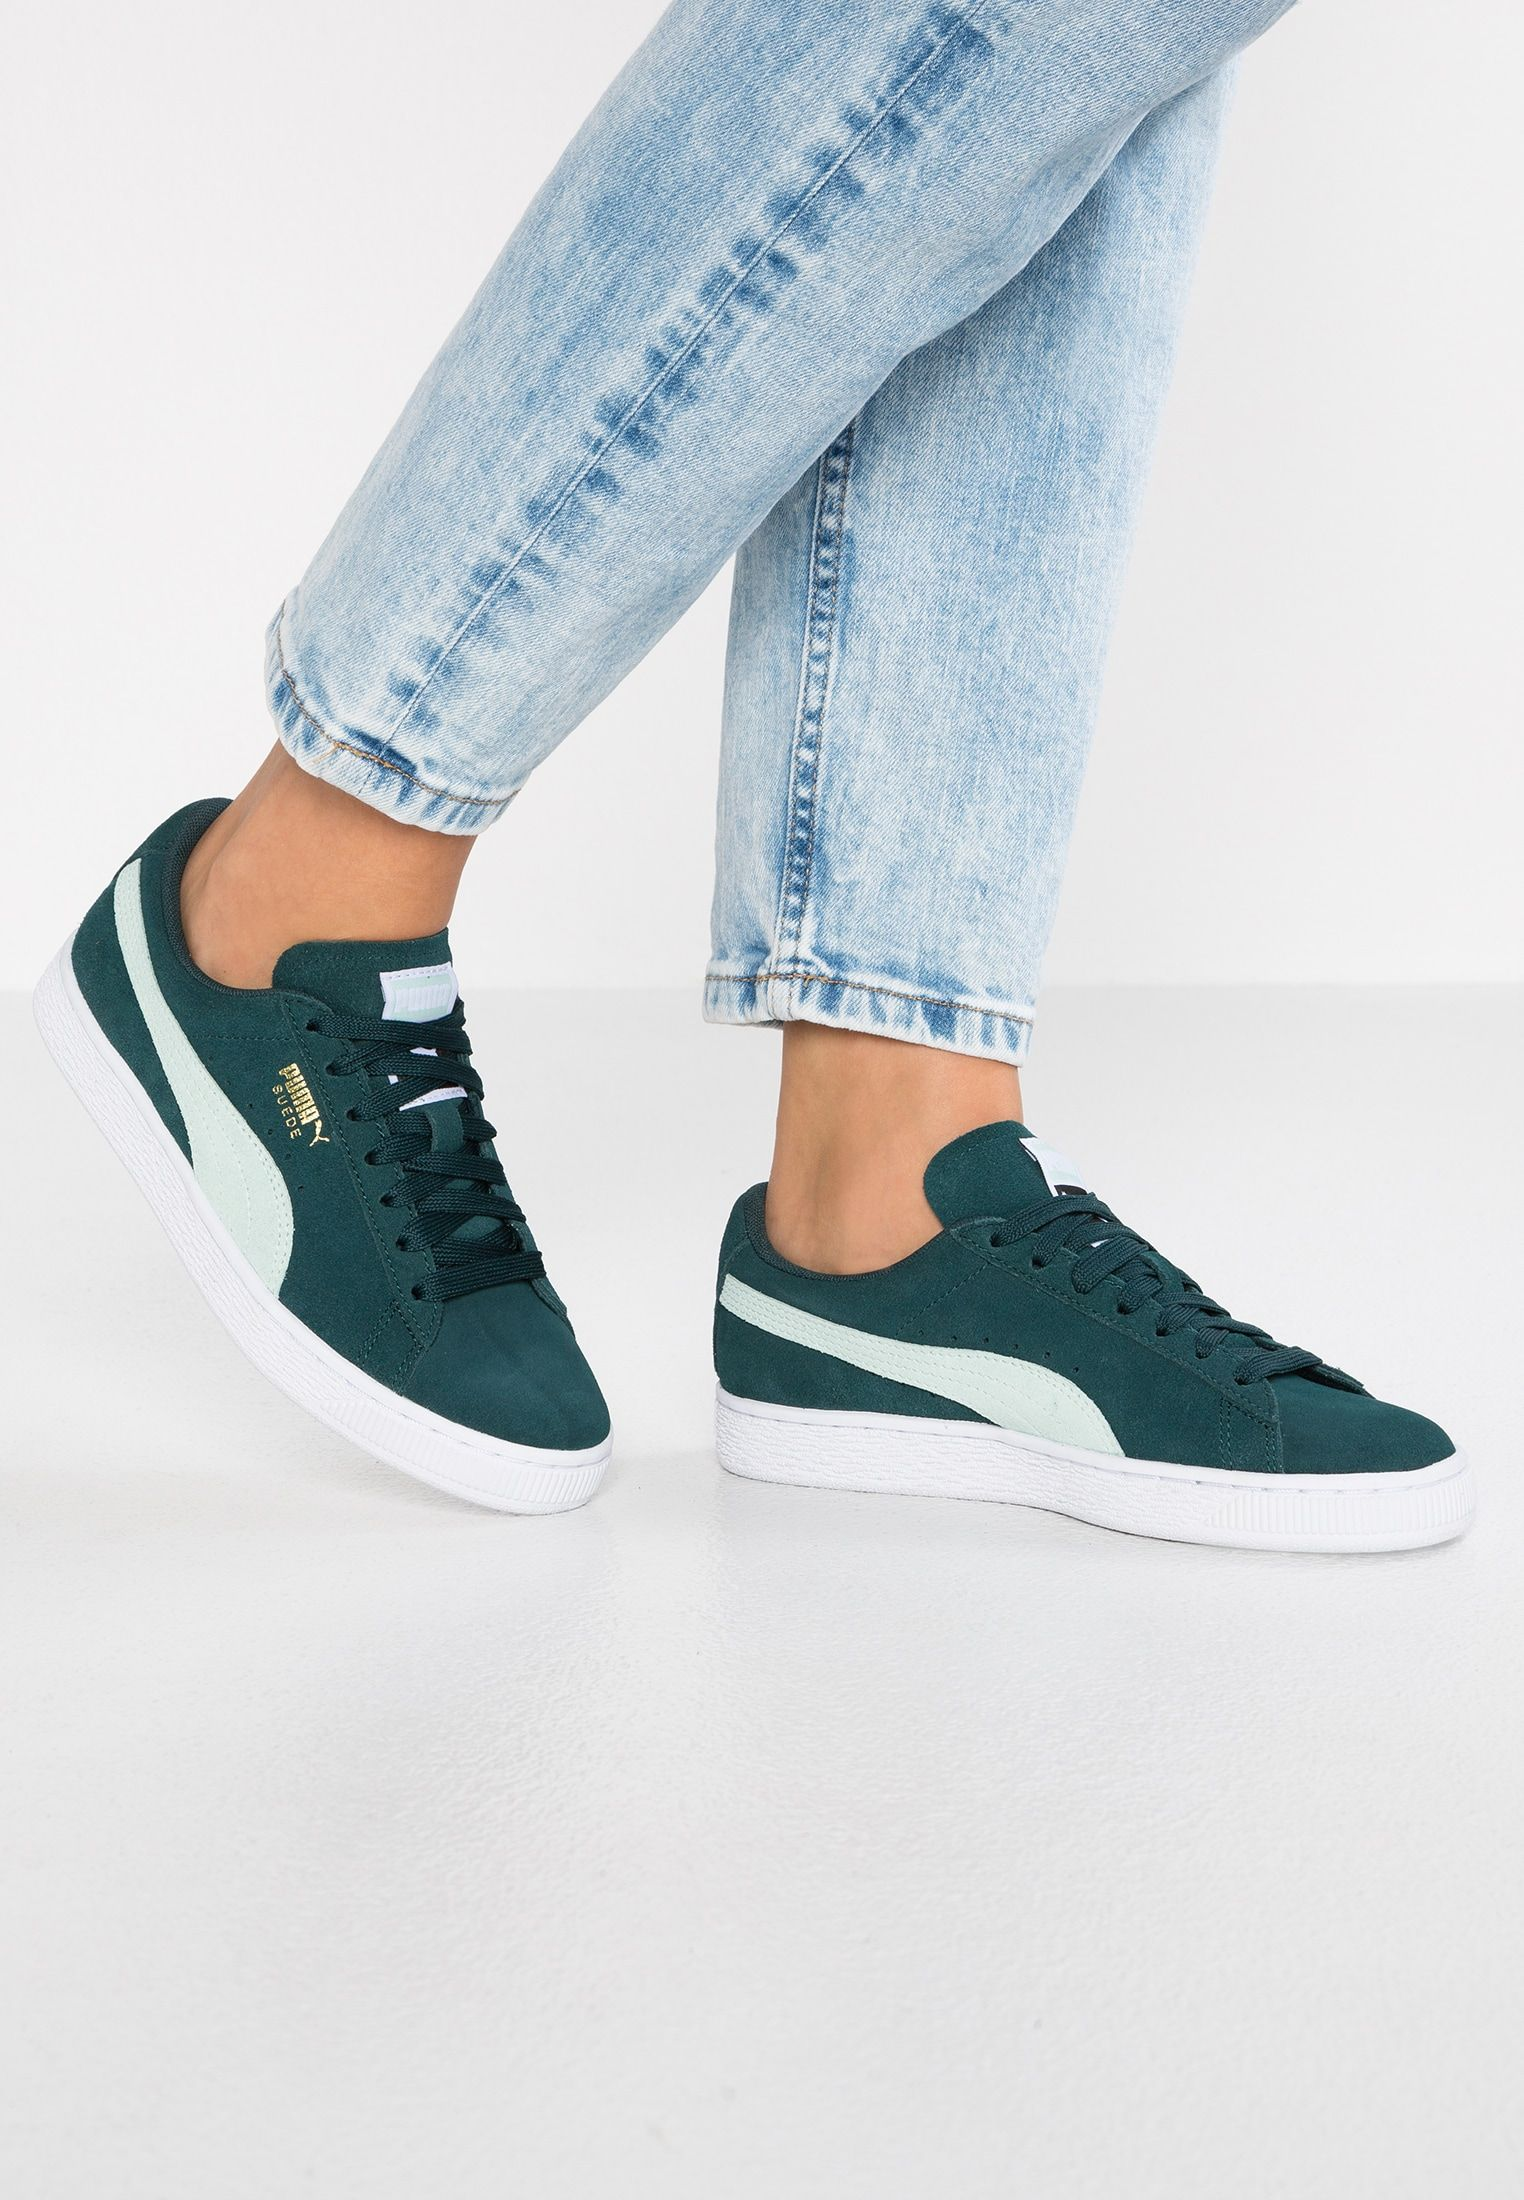 buy popular 4594a 49323 Pin on Sneakers fashion